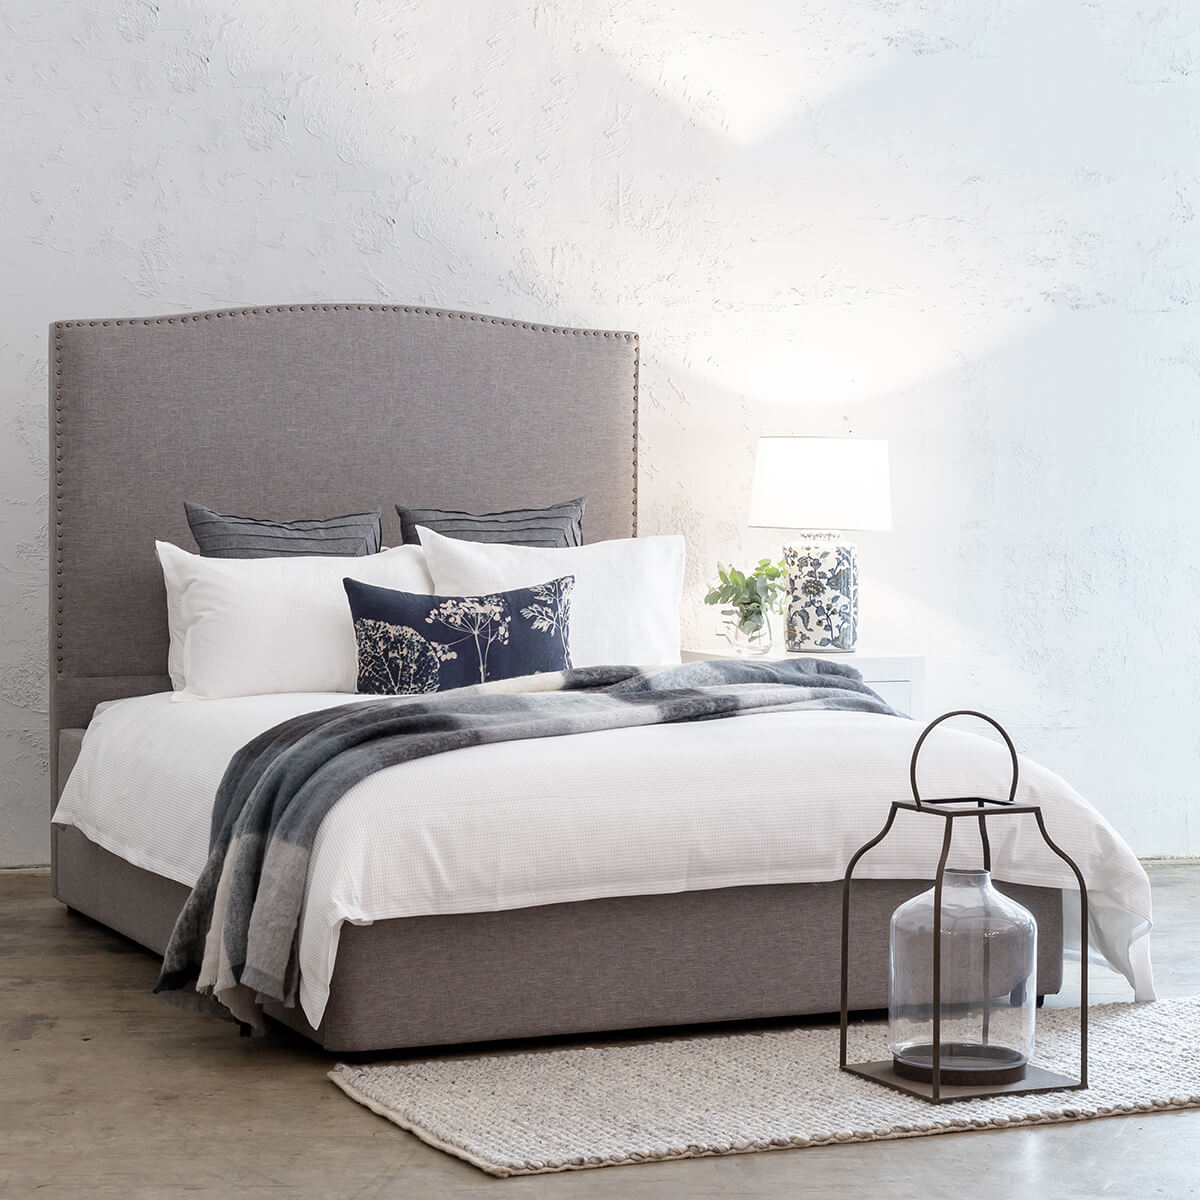 AVALON BED WITH STUDDED CURVE FRAME   |  GREY LINEN  |  KING SIZE